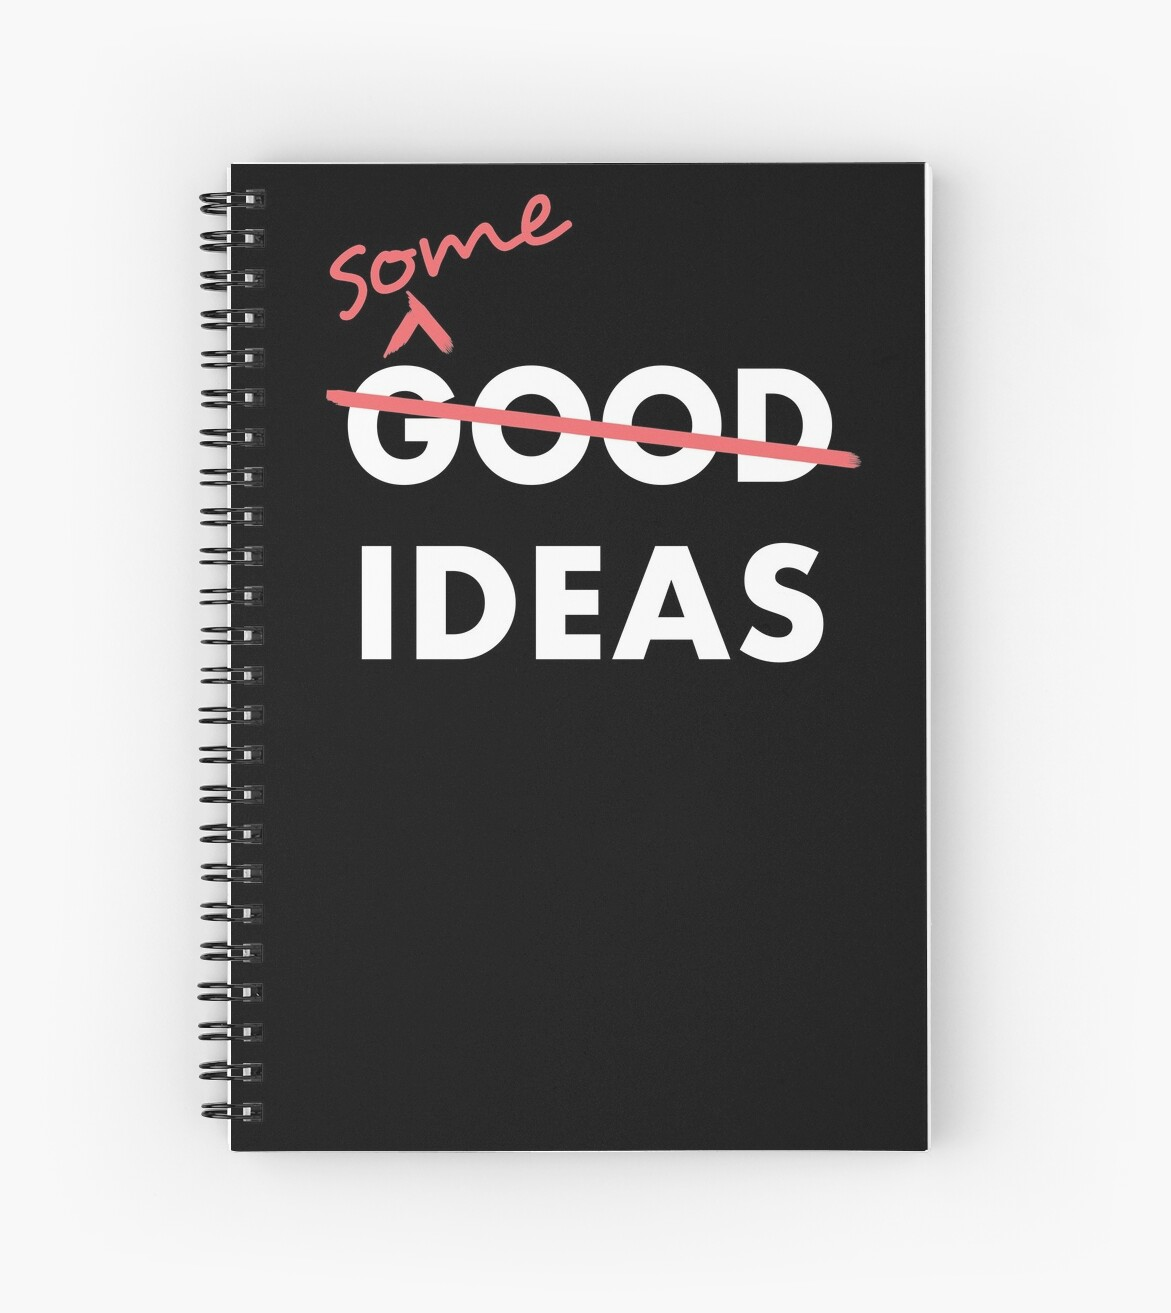 good ideas scratch that some ideas by tyler christian